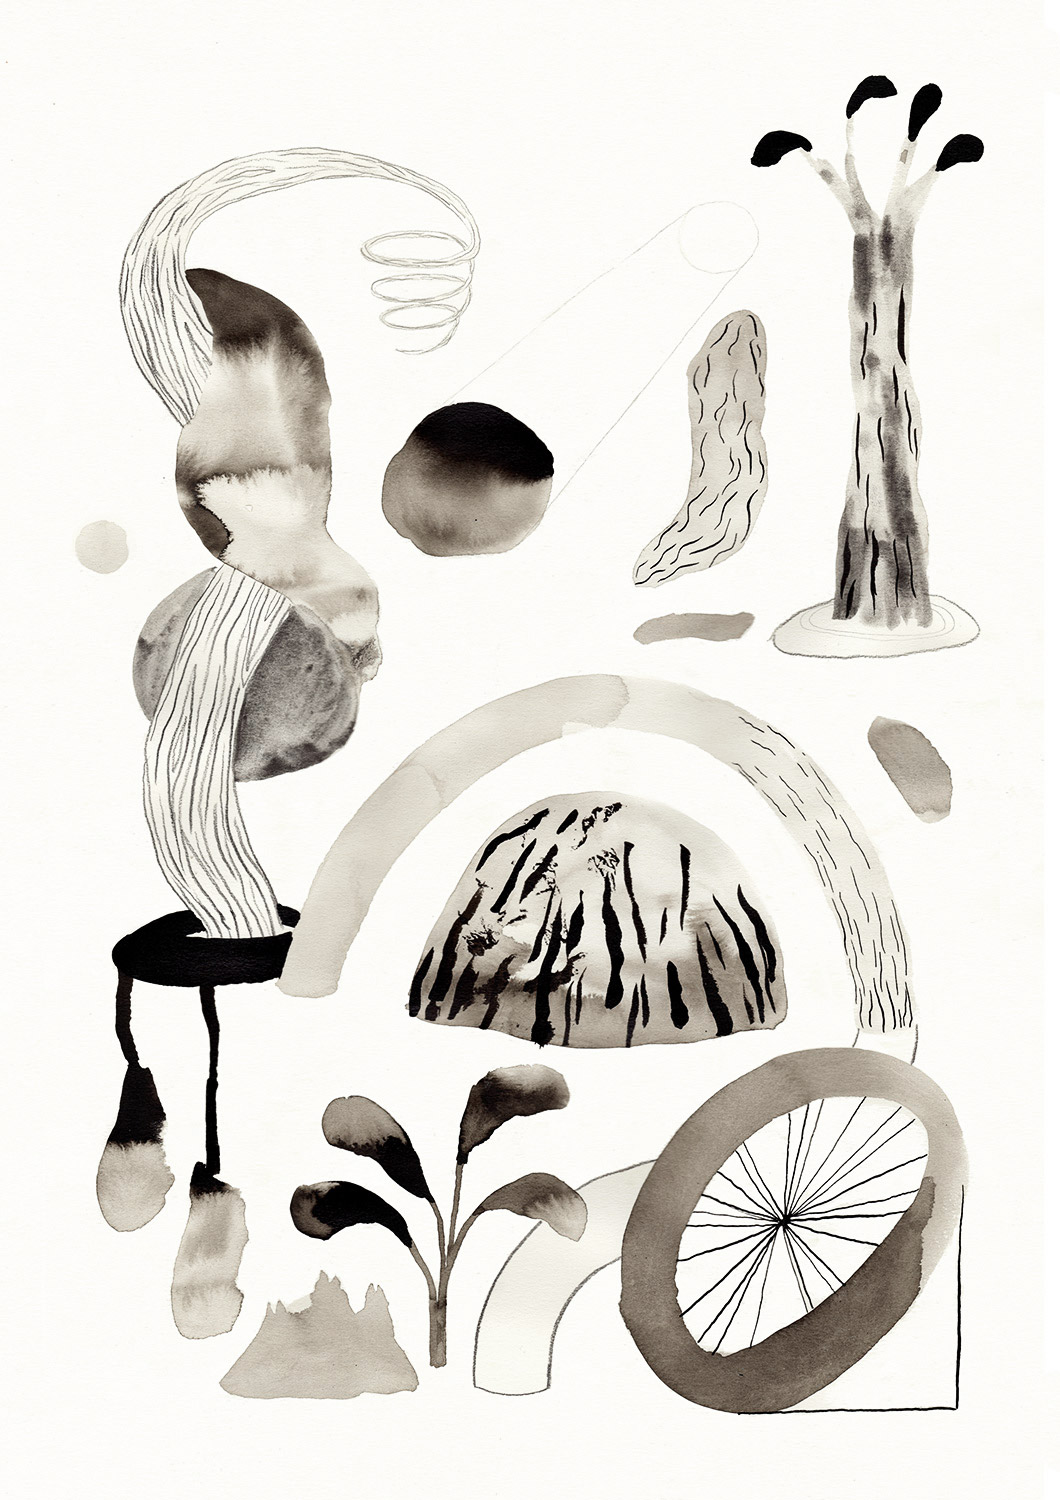 art-prints, gliceé, abstract, landscape, animals, botany, nature, black, grey, white, ink, abstract-forms, flowers, scenery, trees, wood, Buy original high quality art. Paintings, drawings, limited edition prints & posters by talented artists.